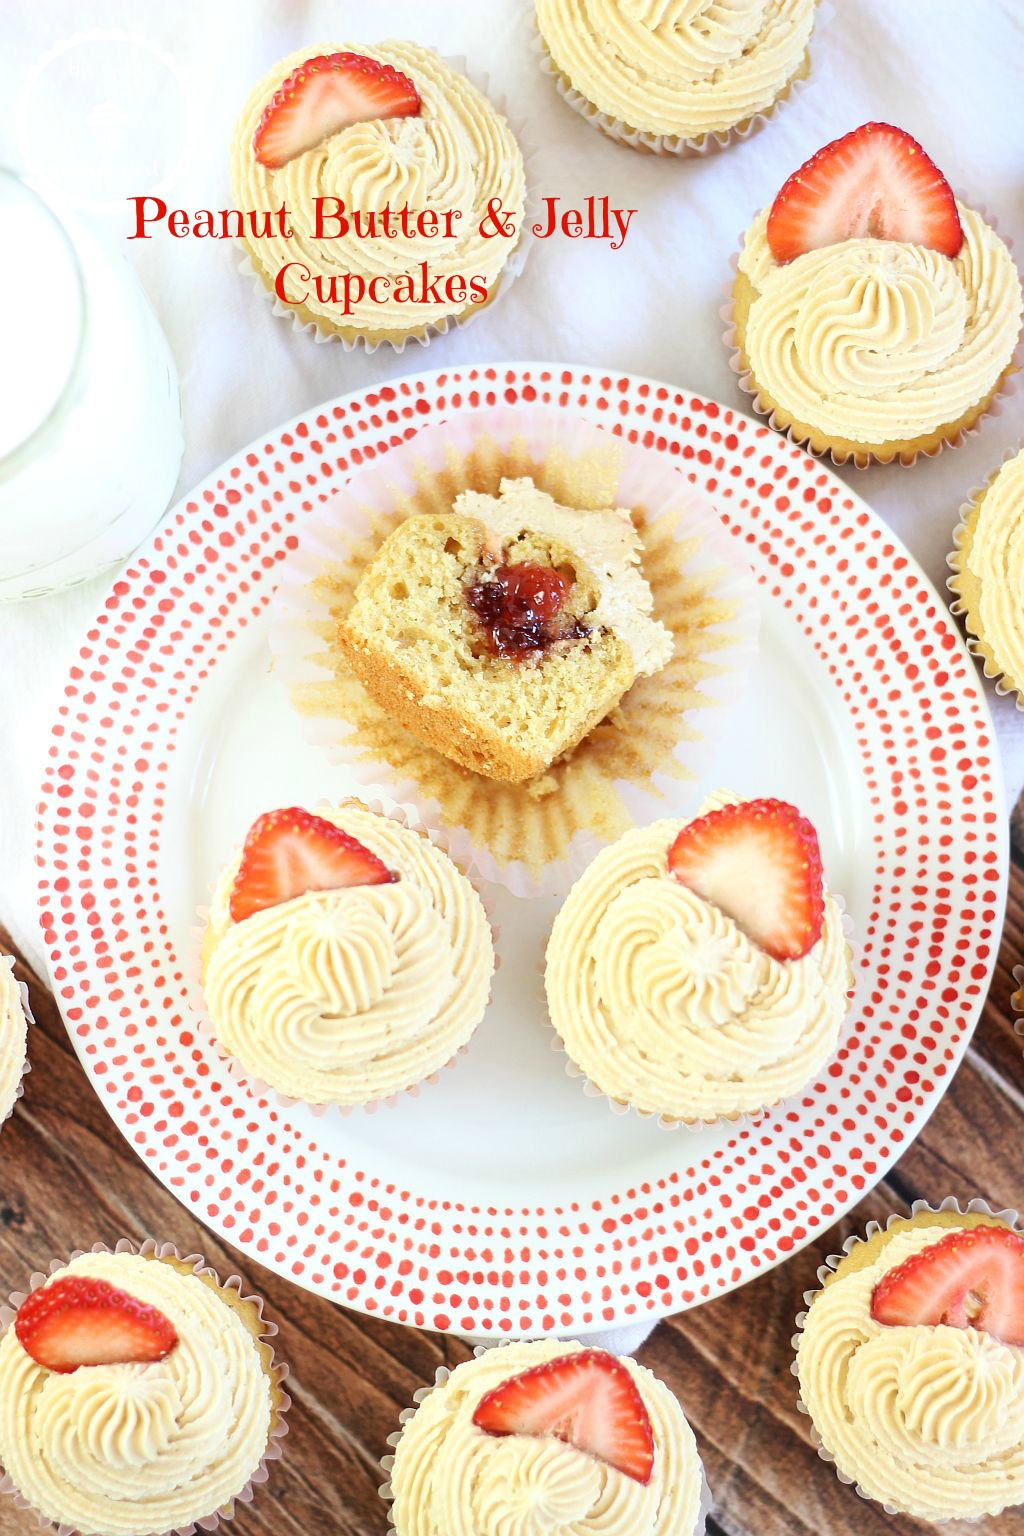 Easy cake mix peanut butter cupcakes filled with strawberry jam, and ...